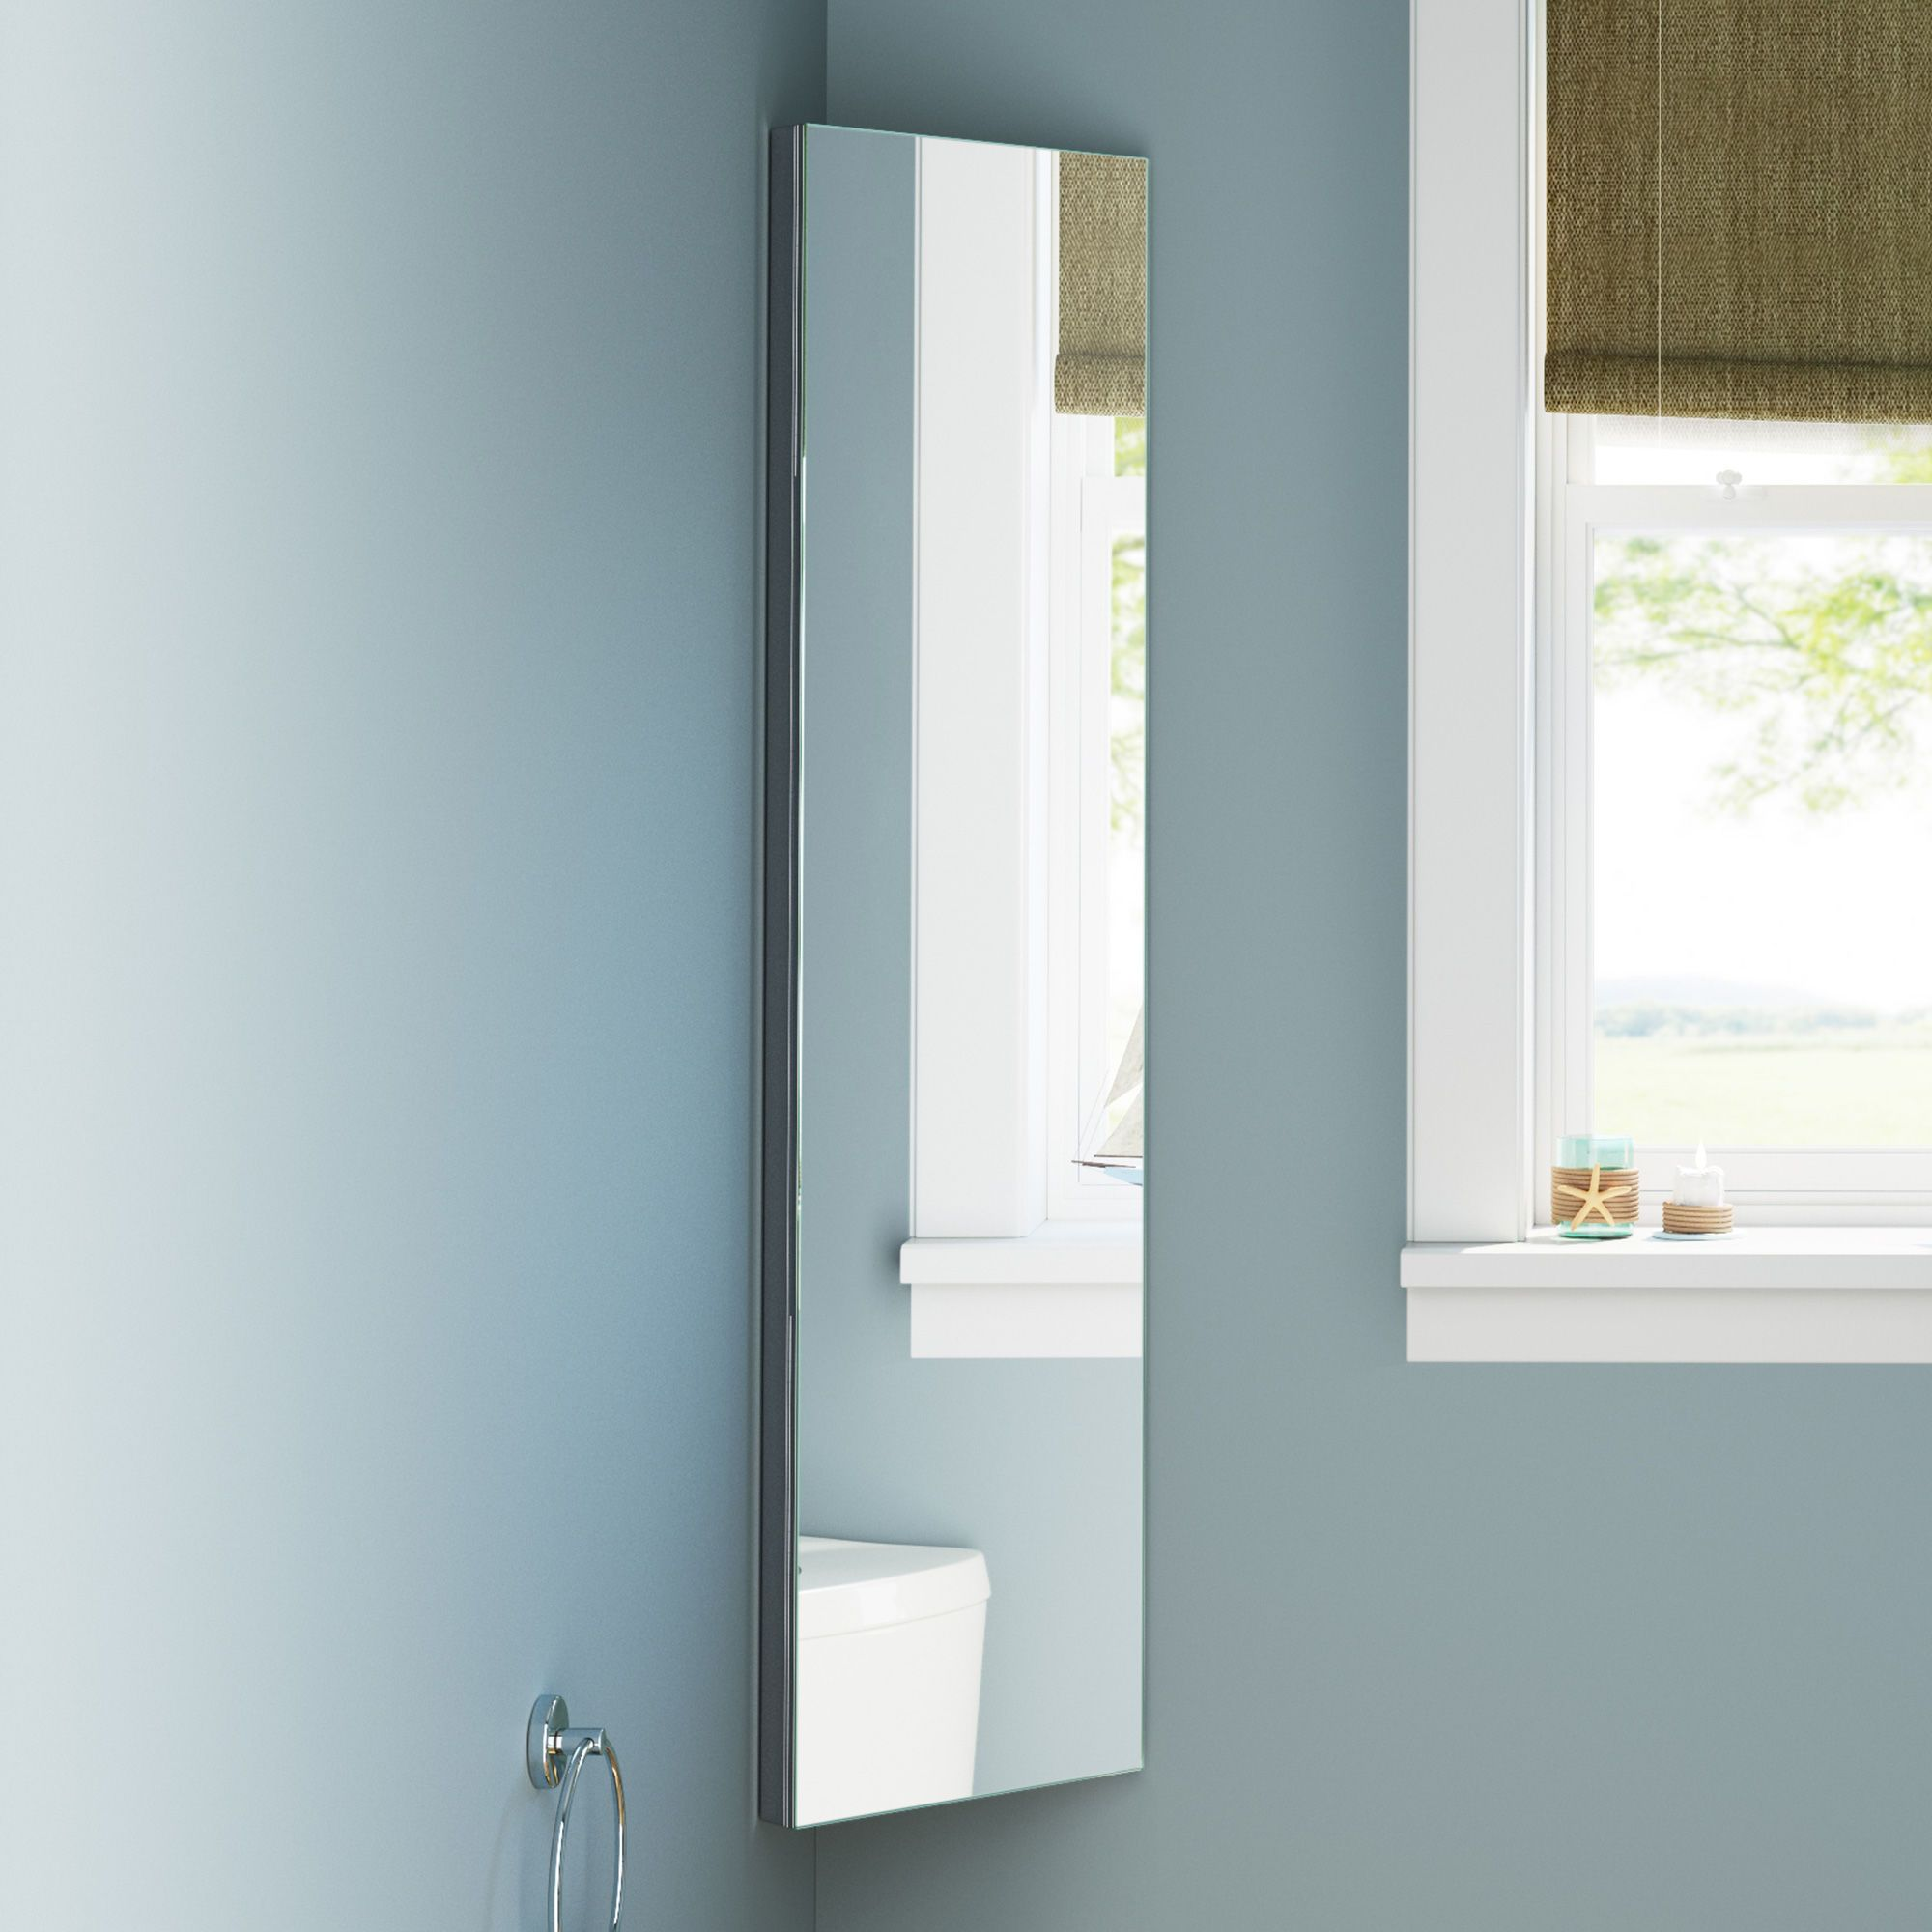 300x1200mm Liberty Stainless Steel Tall Corner Mirror Cabinet